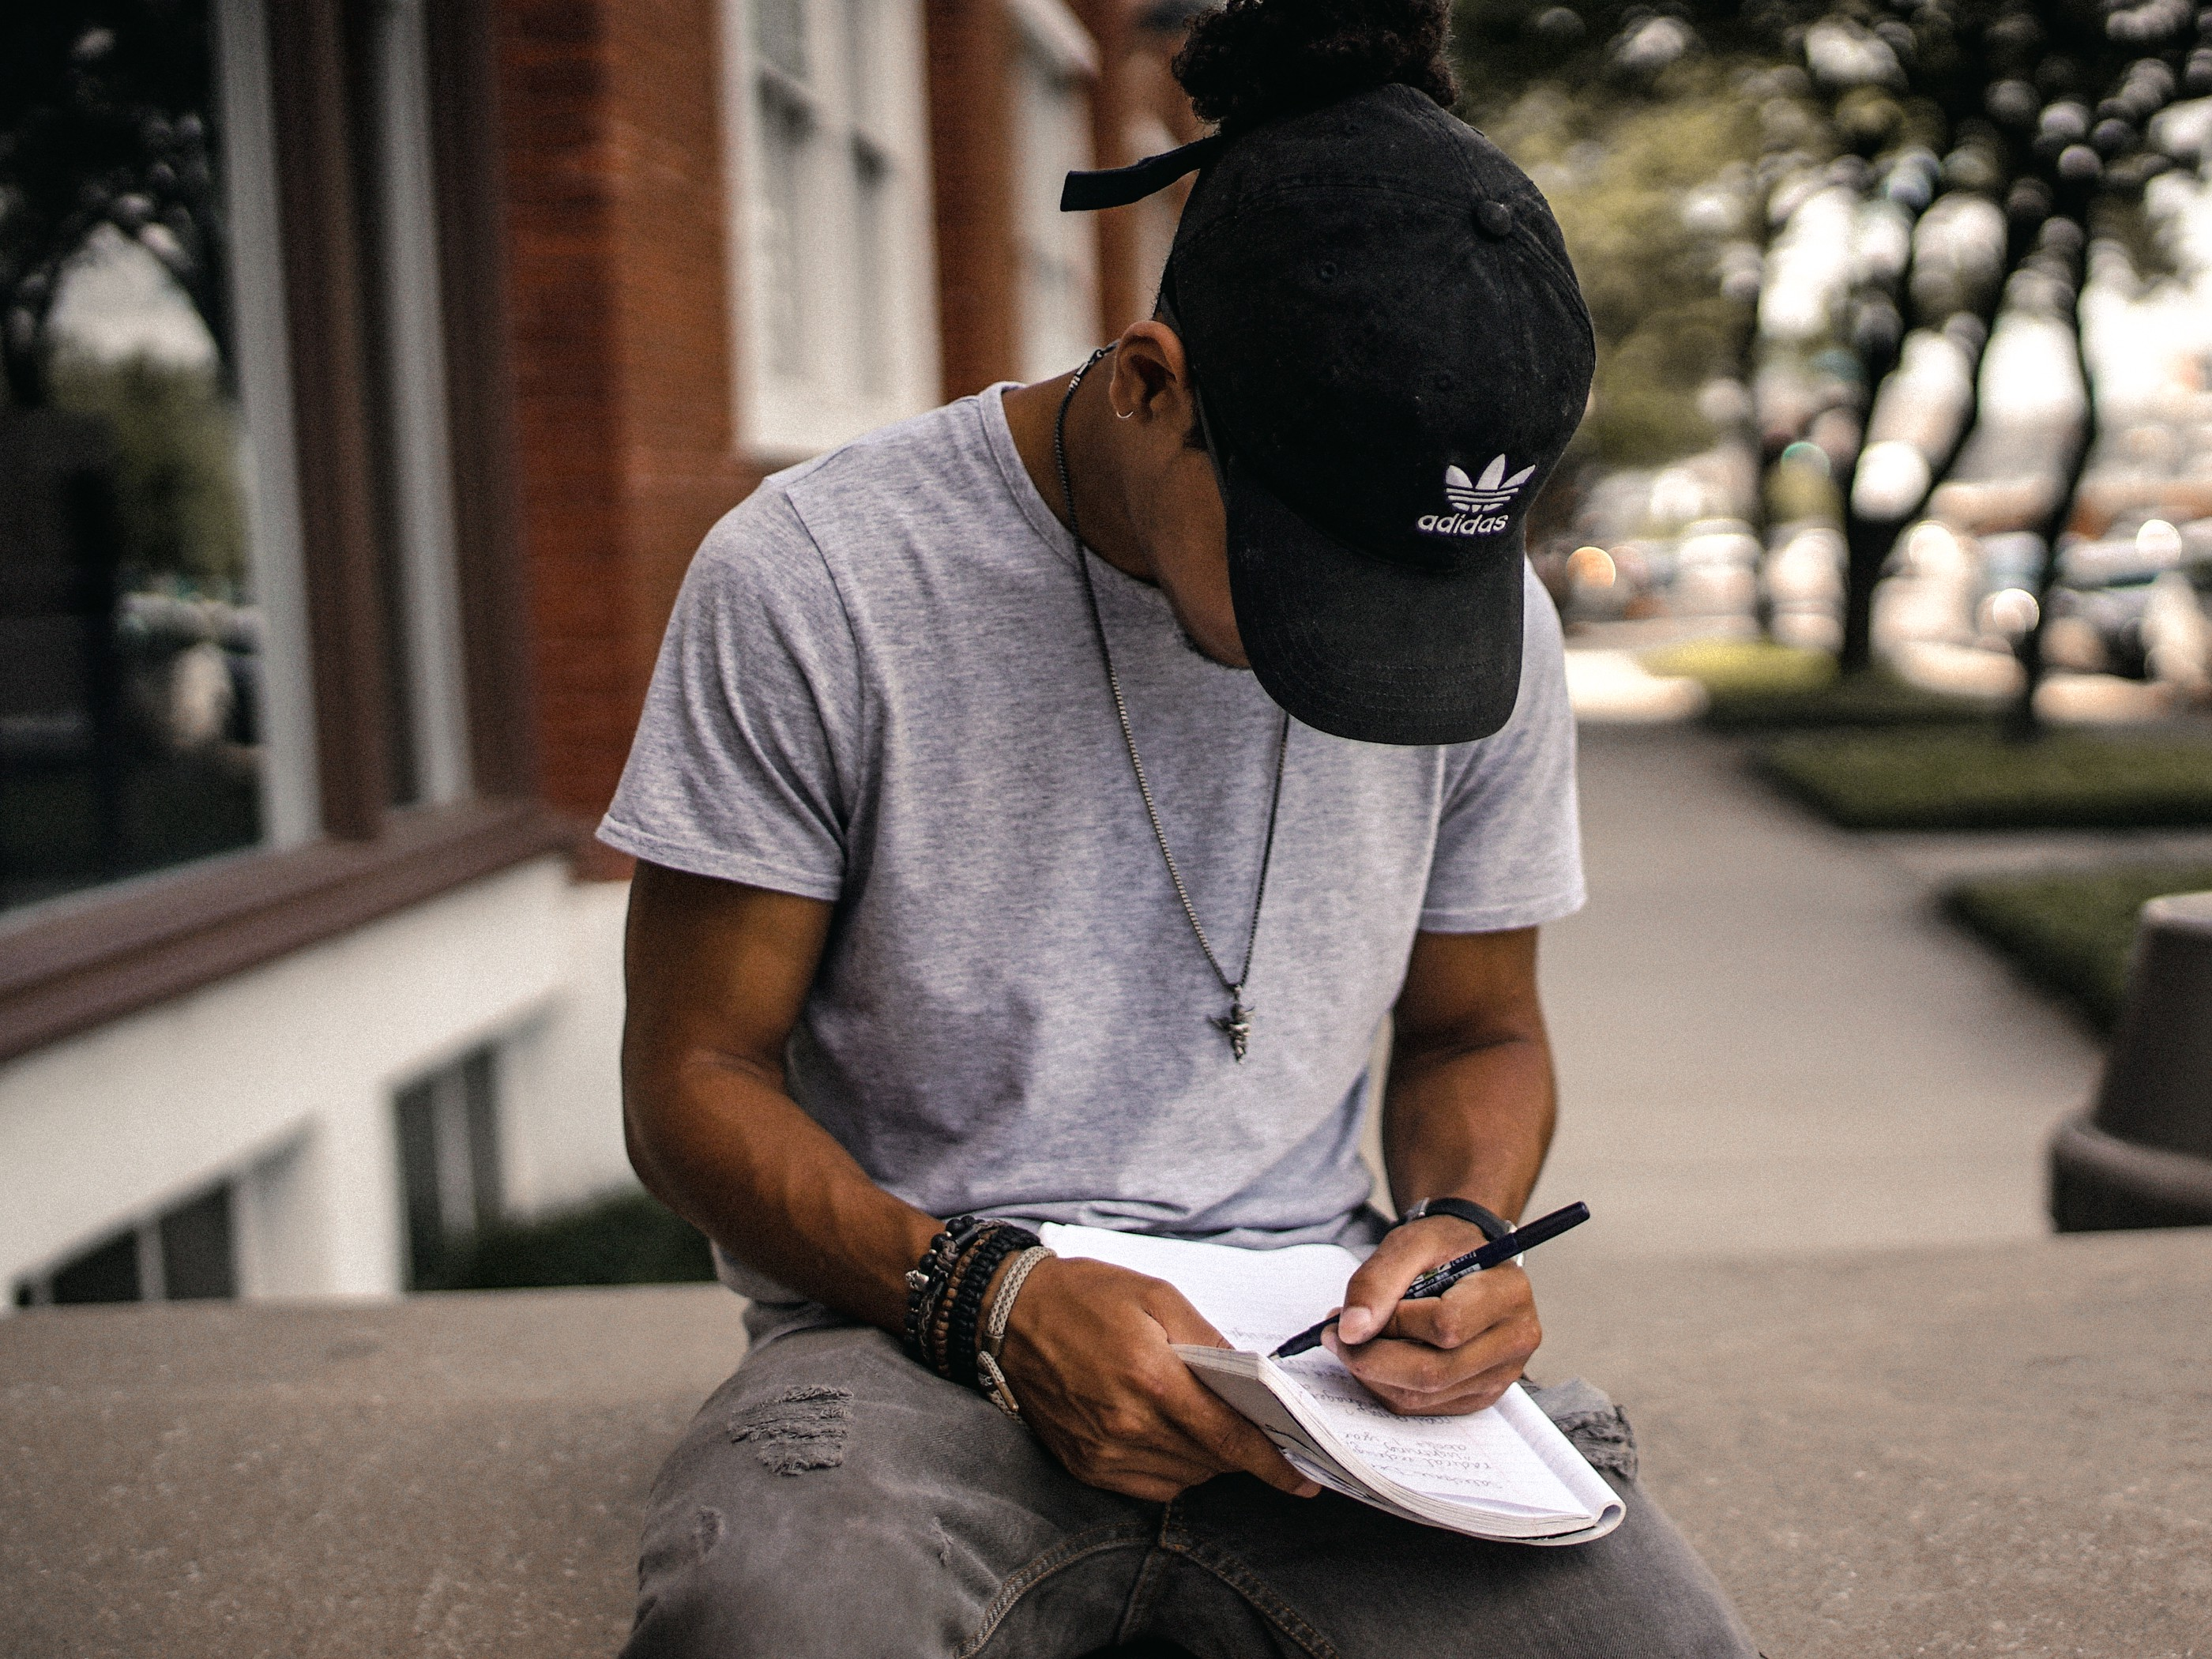 A young man writing in a notebook on a bench.